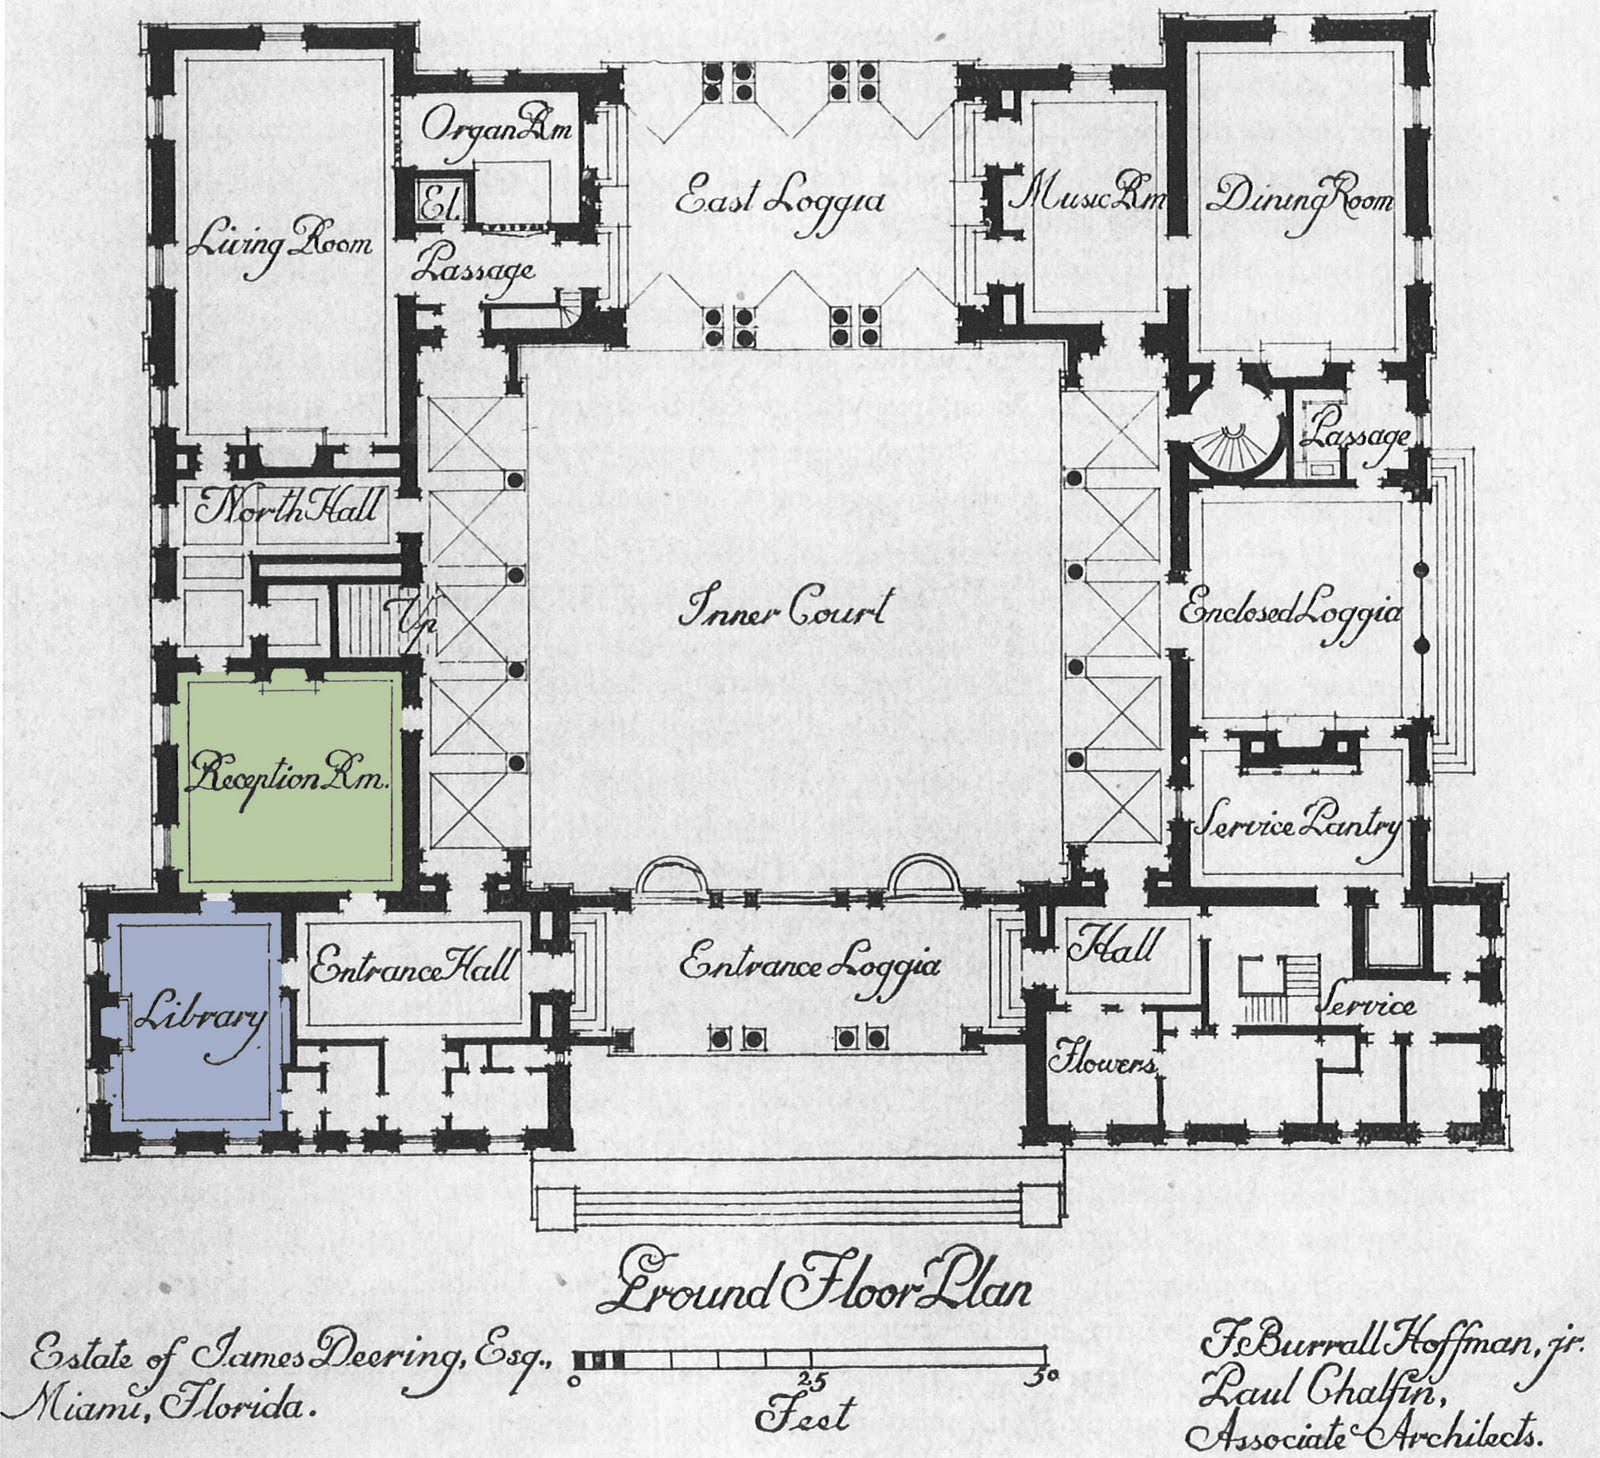 Vizcaya reception room and library design theme for Estate blueprints